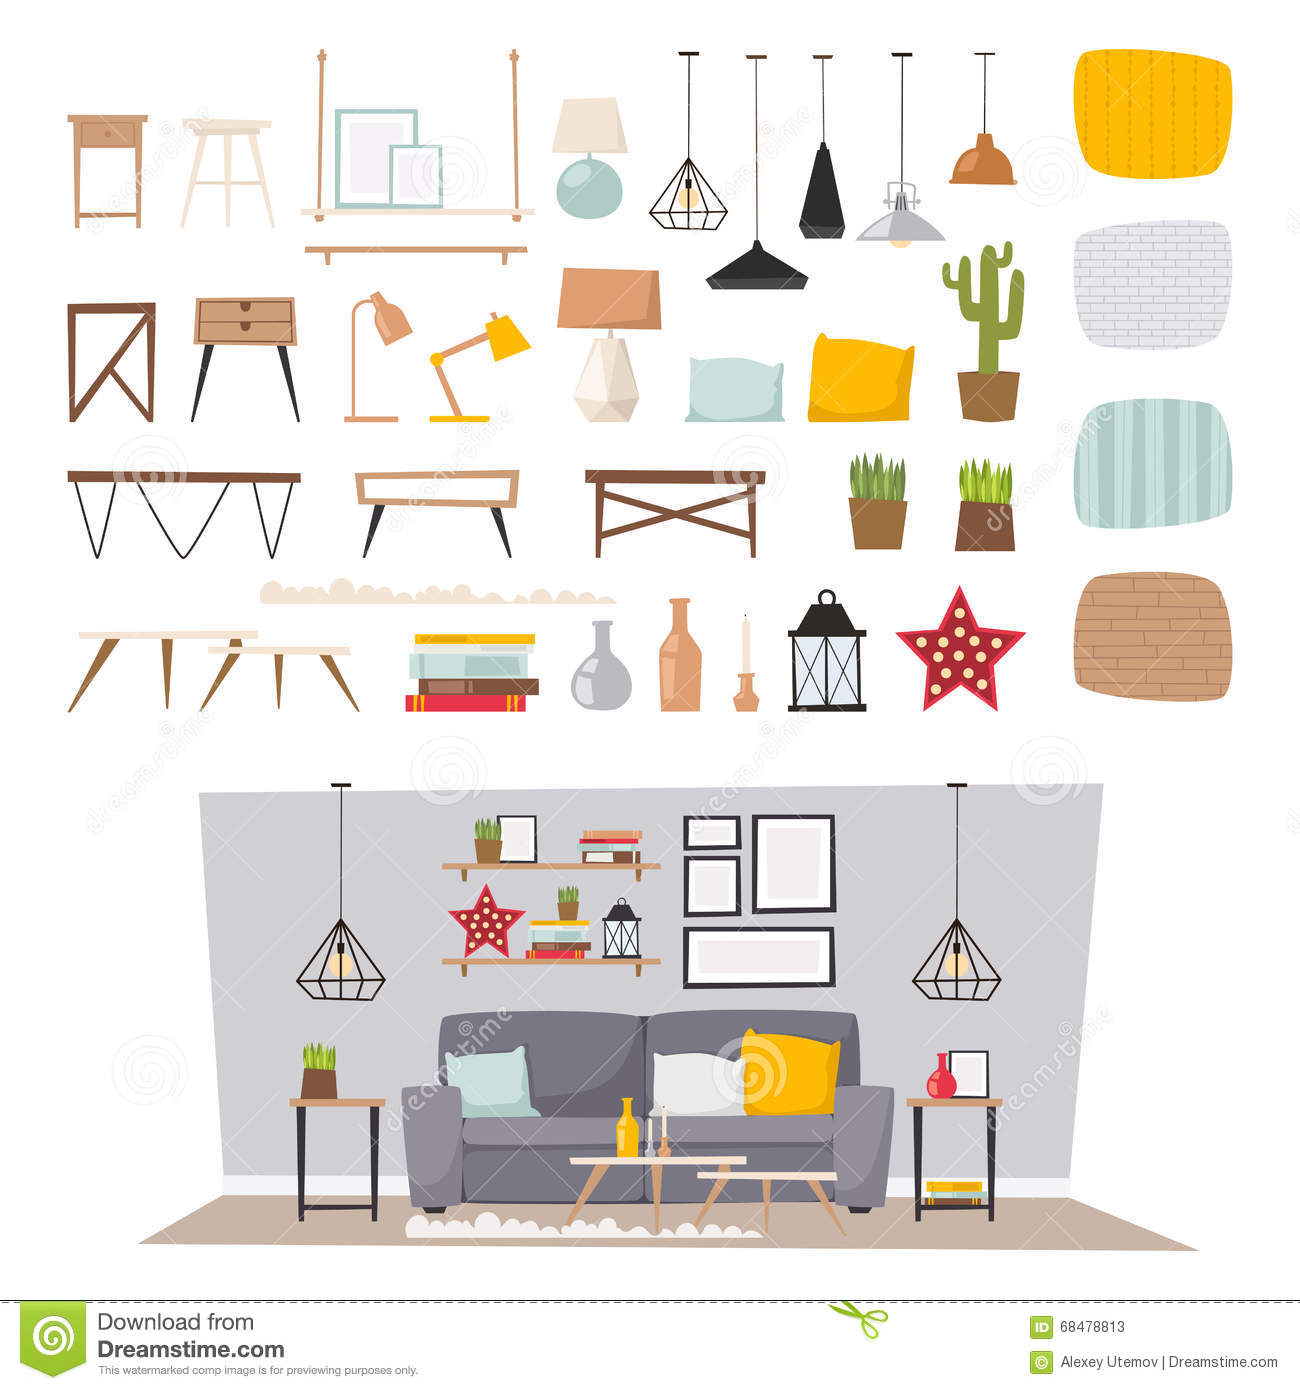 Contemporary home interior design and vase decor royalty for Room design vector